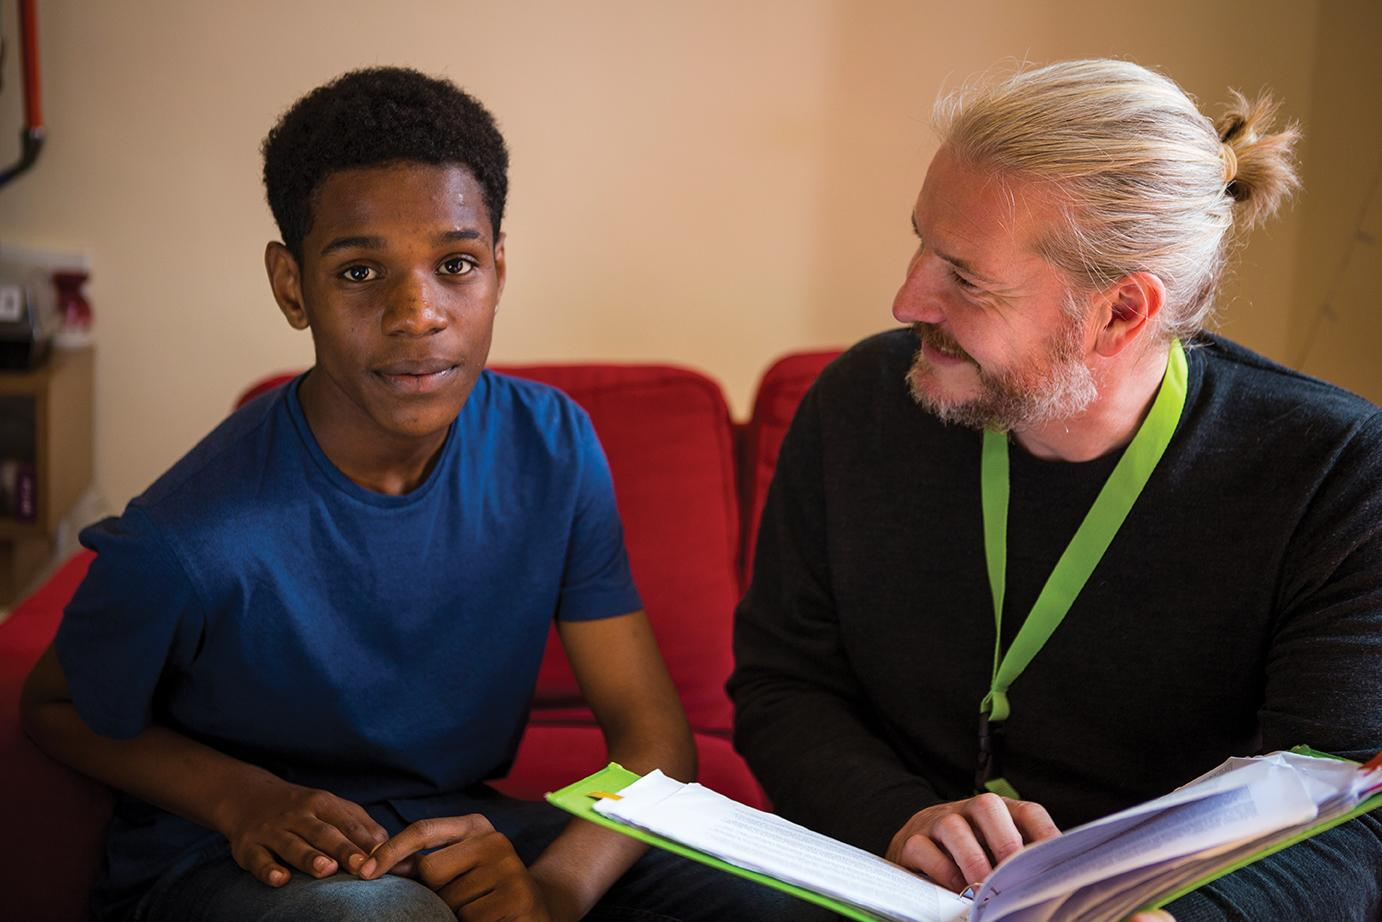 Barnardo's project worker sitting with young person on a sofa